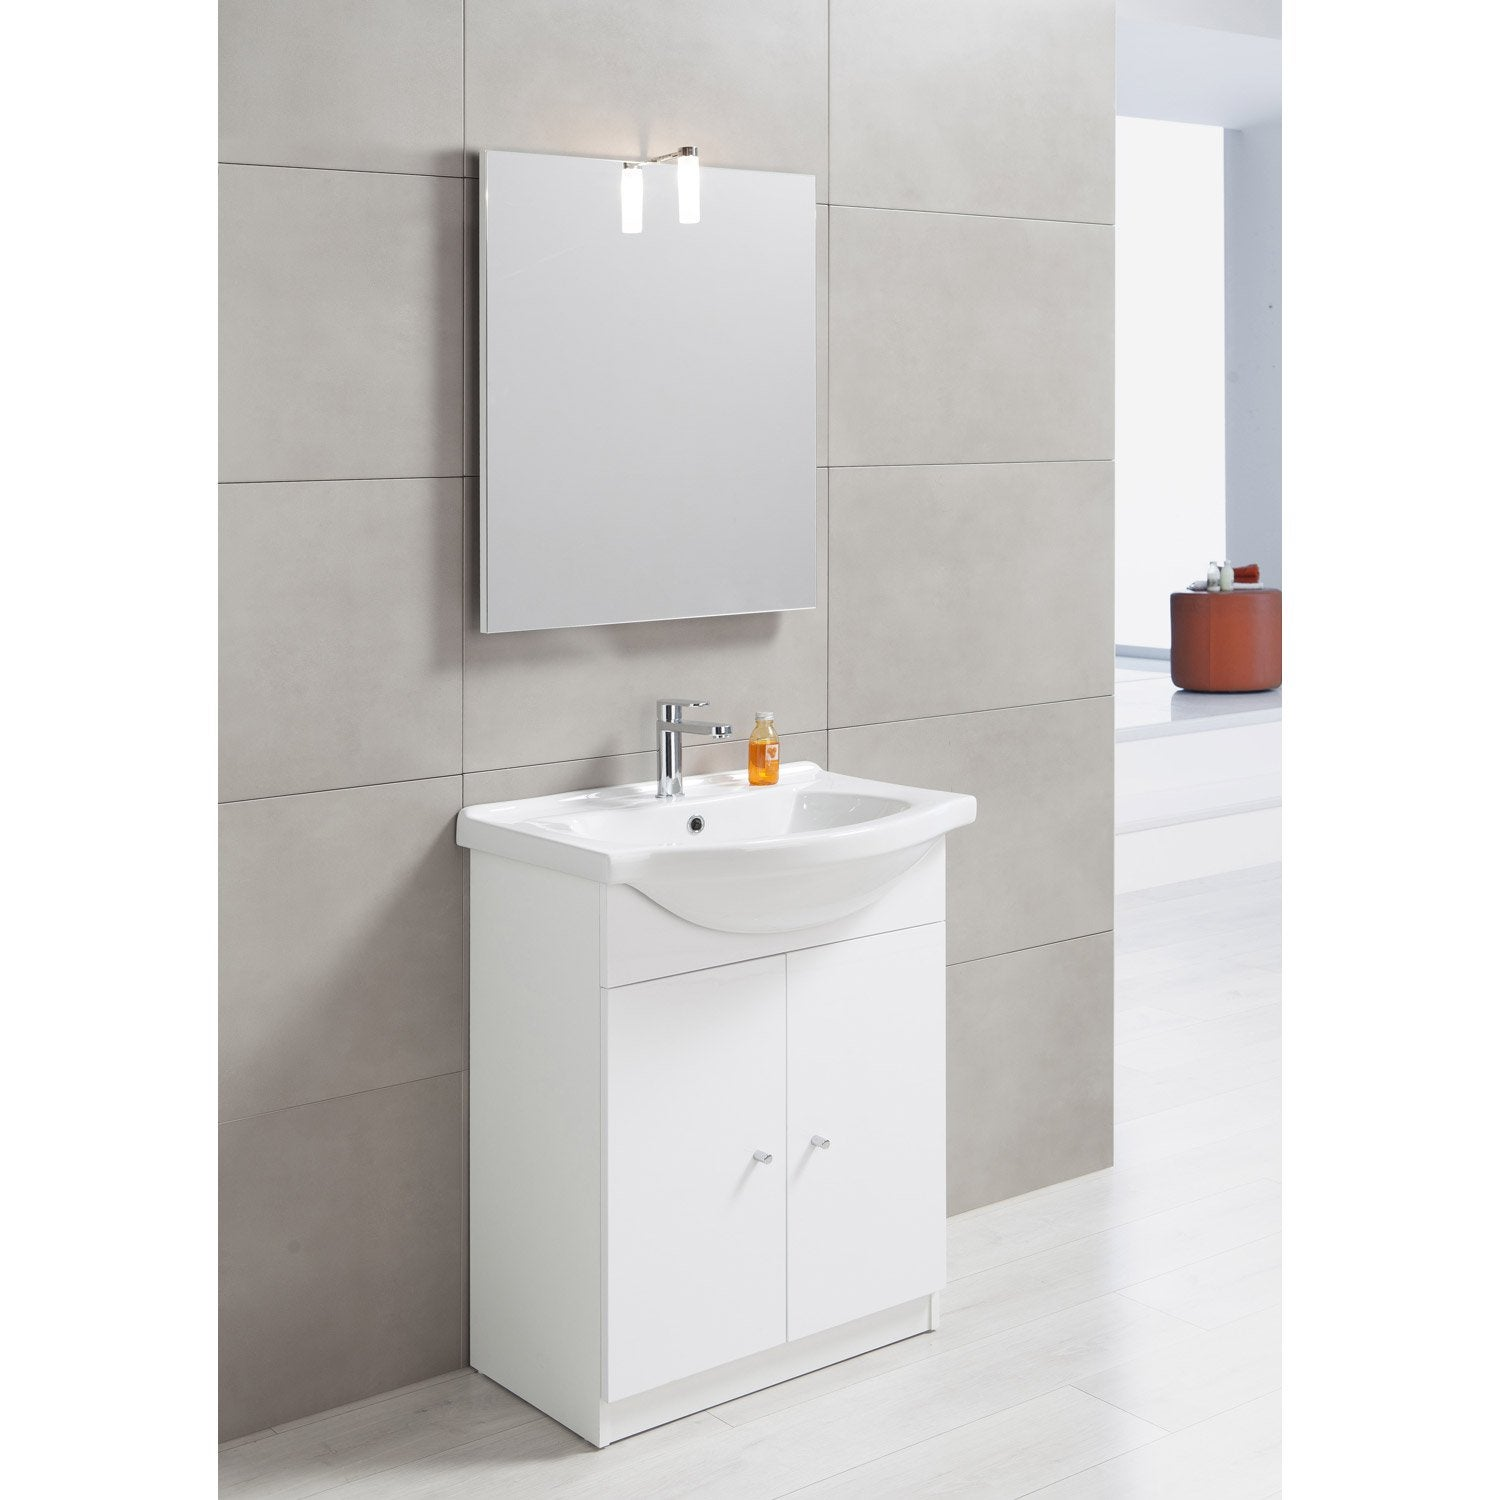 Meuble vasque x x cm blanc bianca leroy - Meuble 2 vasques leroy merlin ...